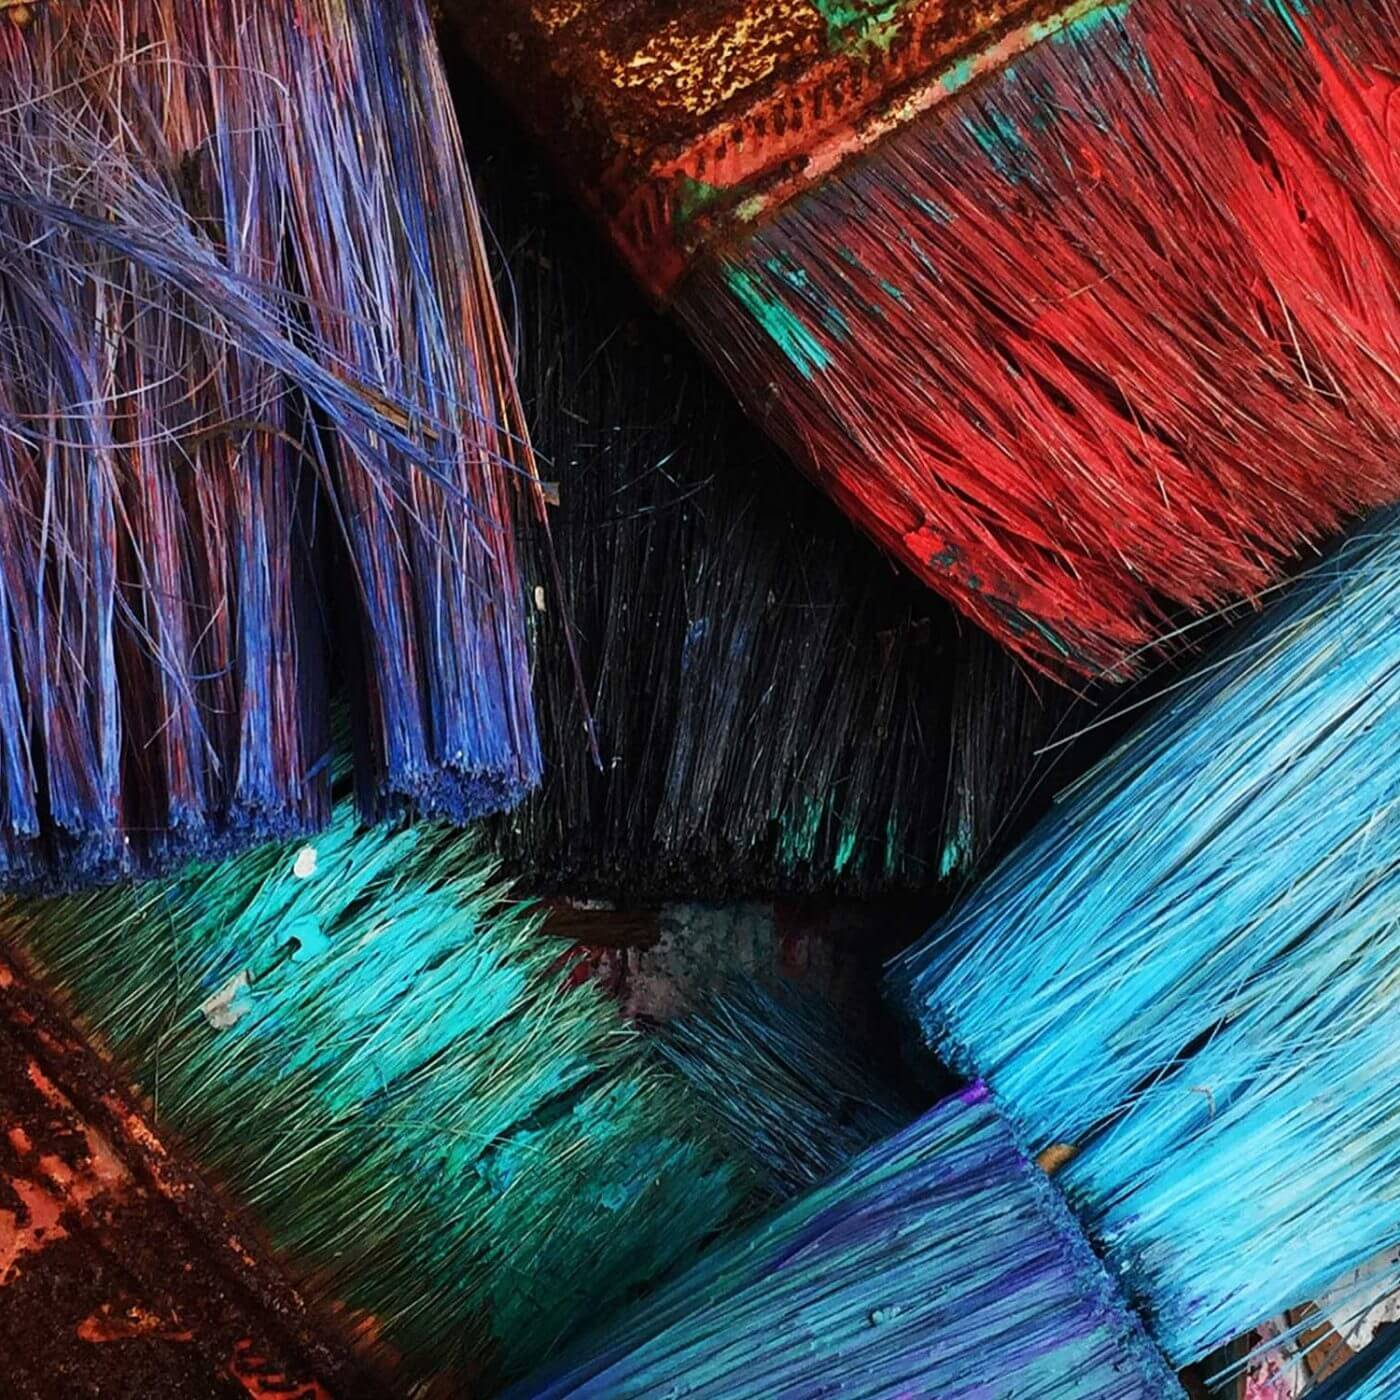 A closeup of paintbrushes with various colors of paint on them.